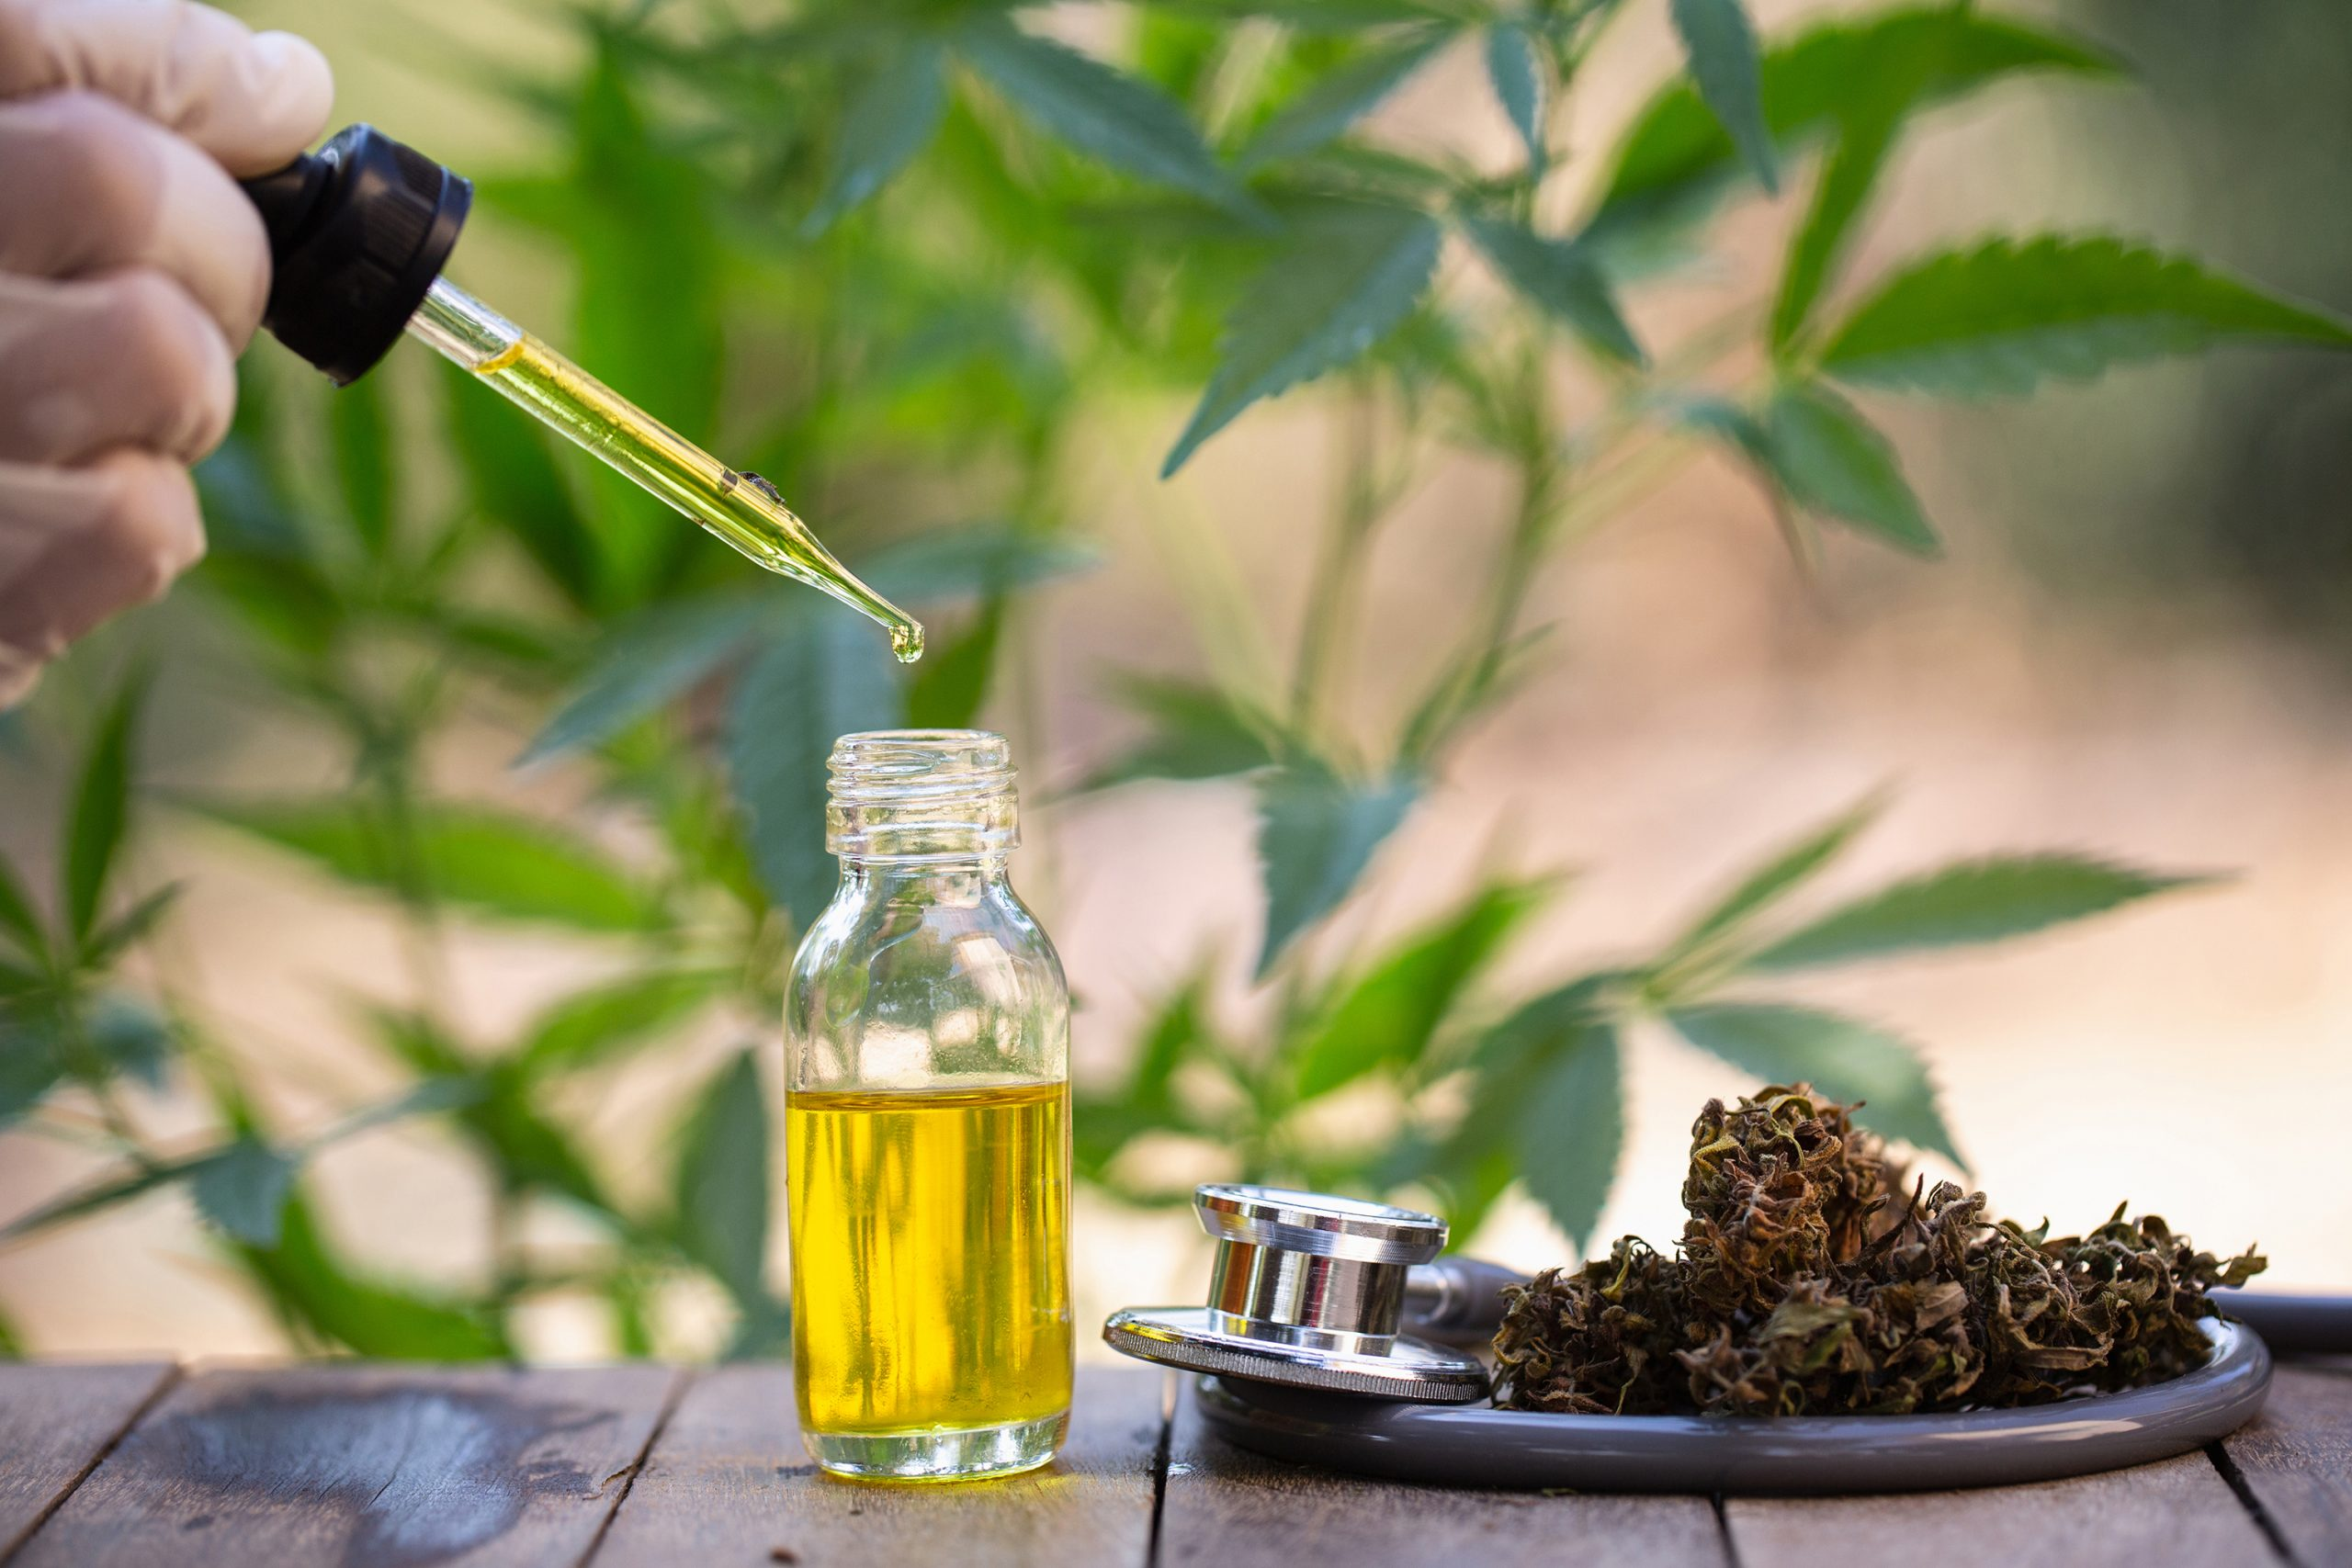 Are you using a Safe CBD Product?